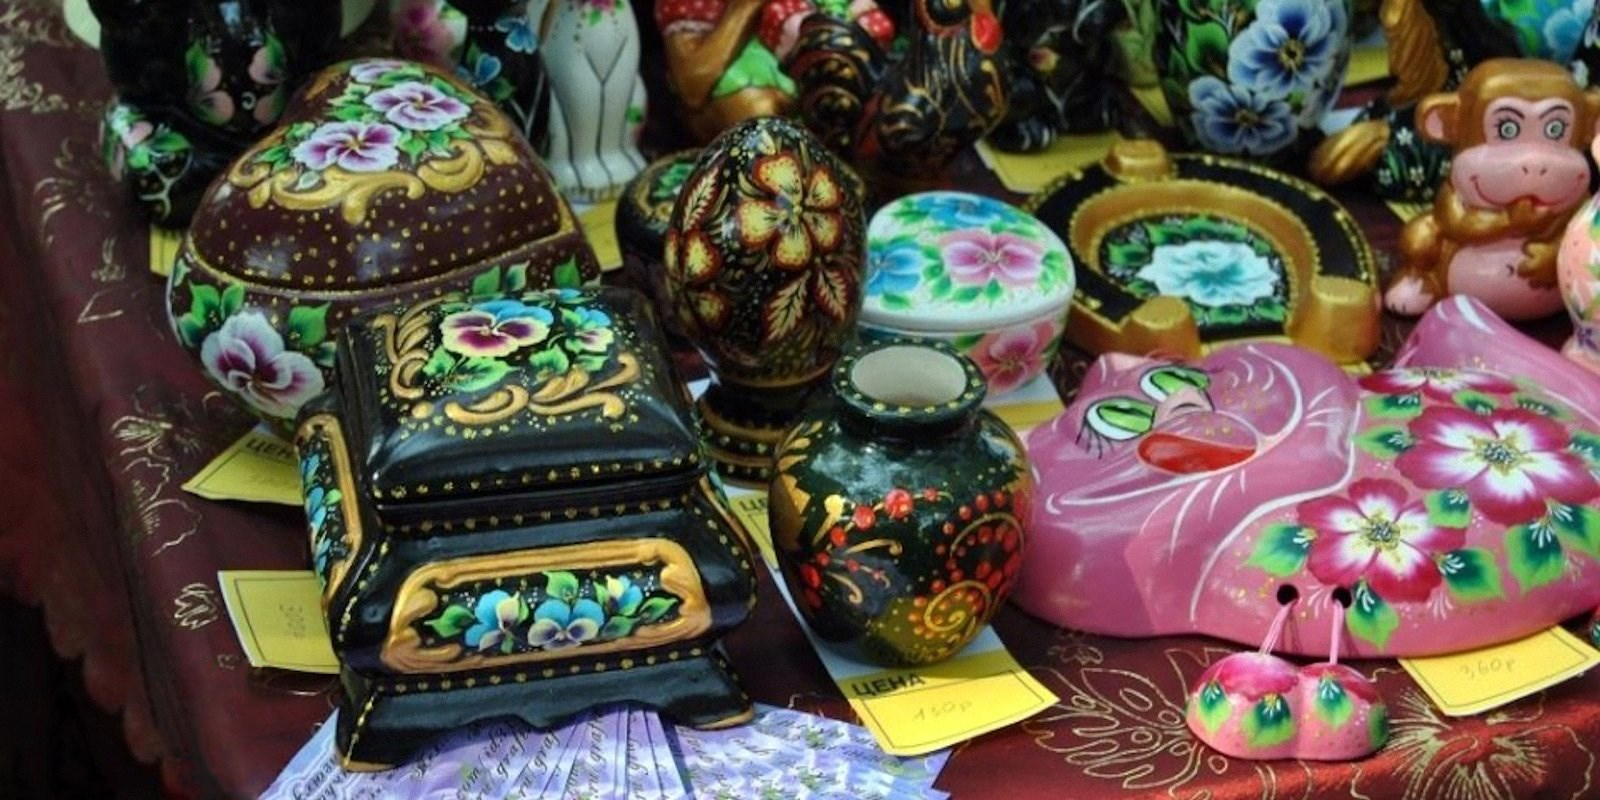 00 dnr donetsk pr folk art fair 01 050915